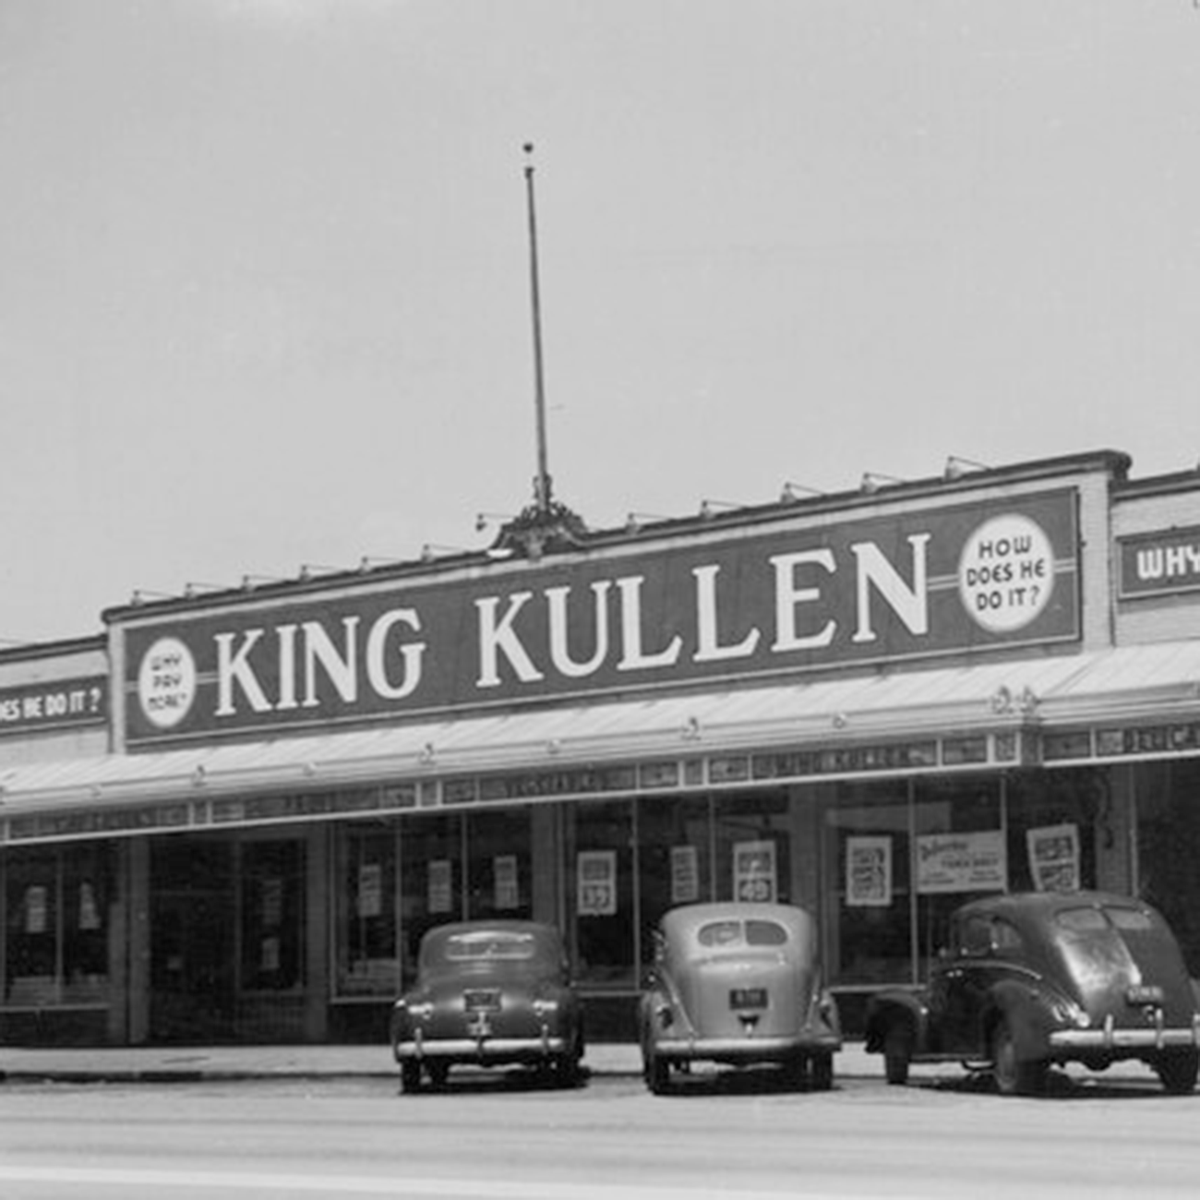 1930: The first American supermarket